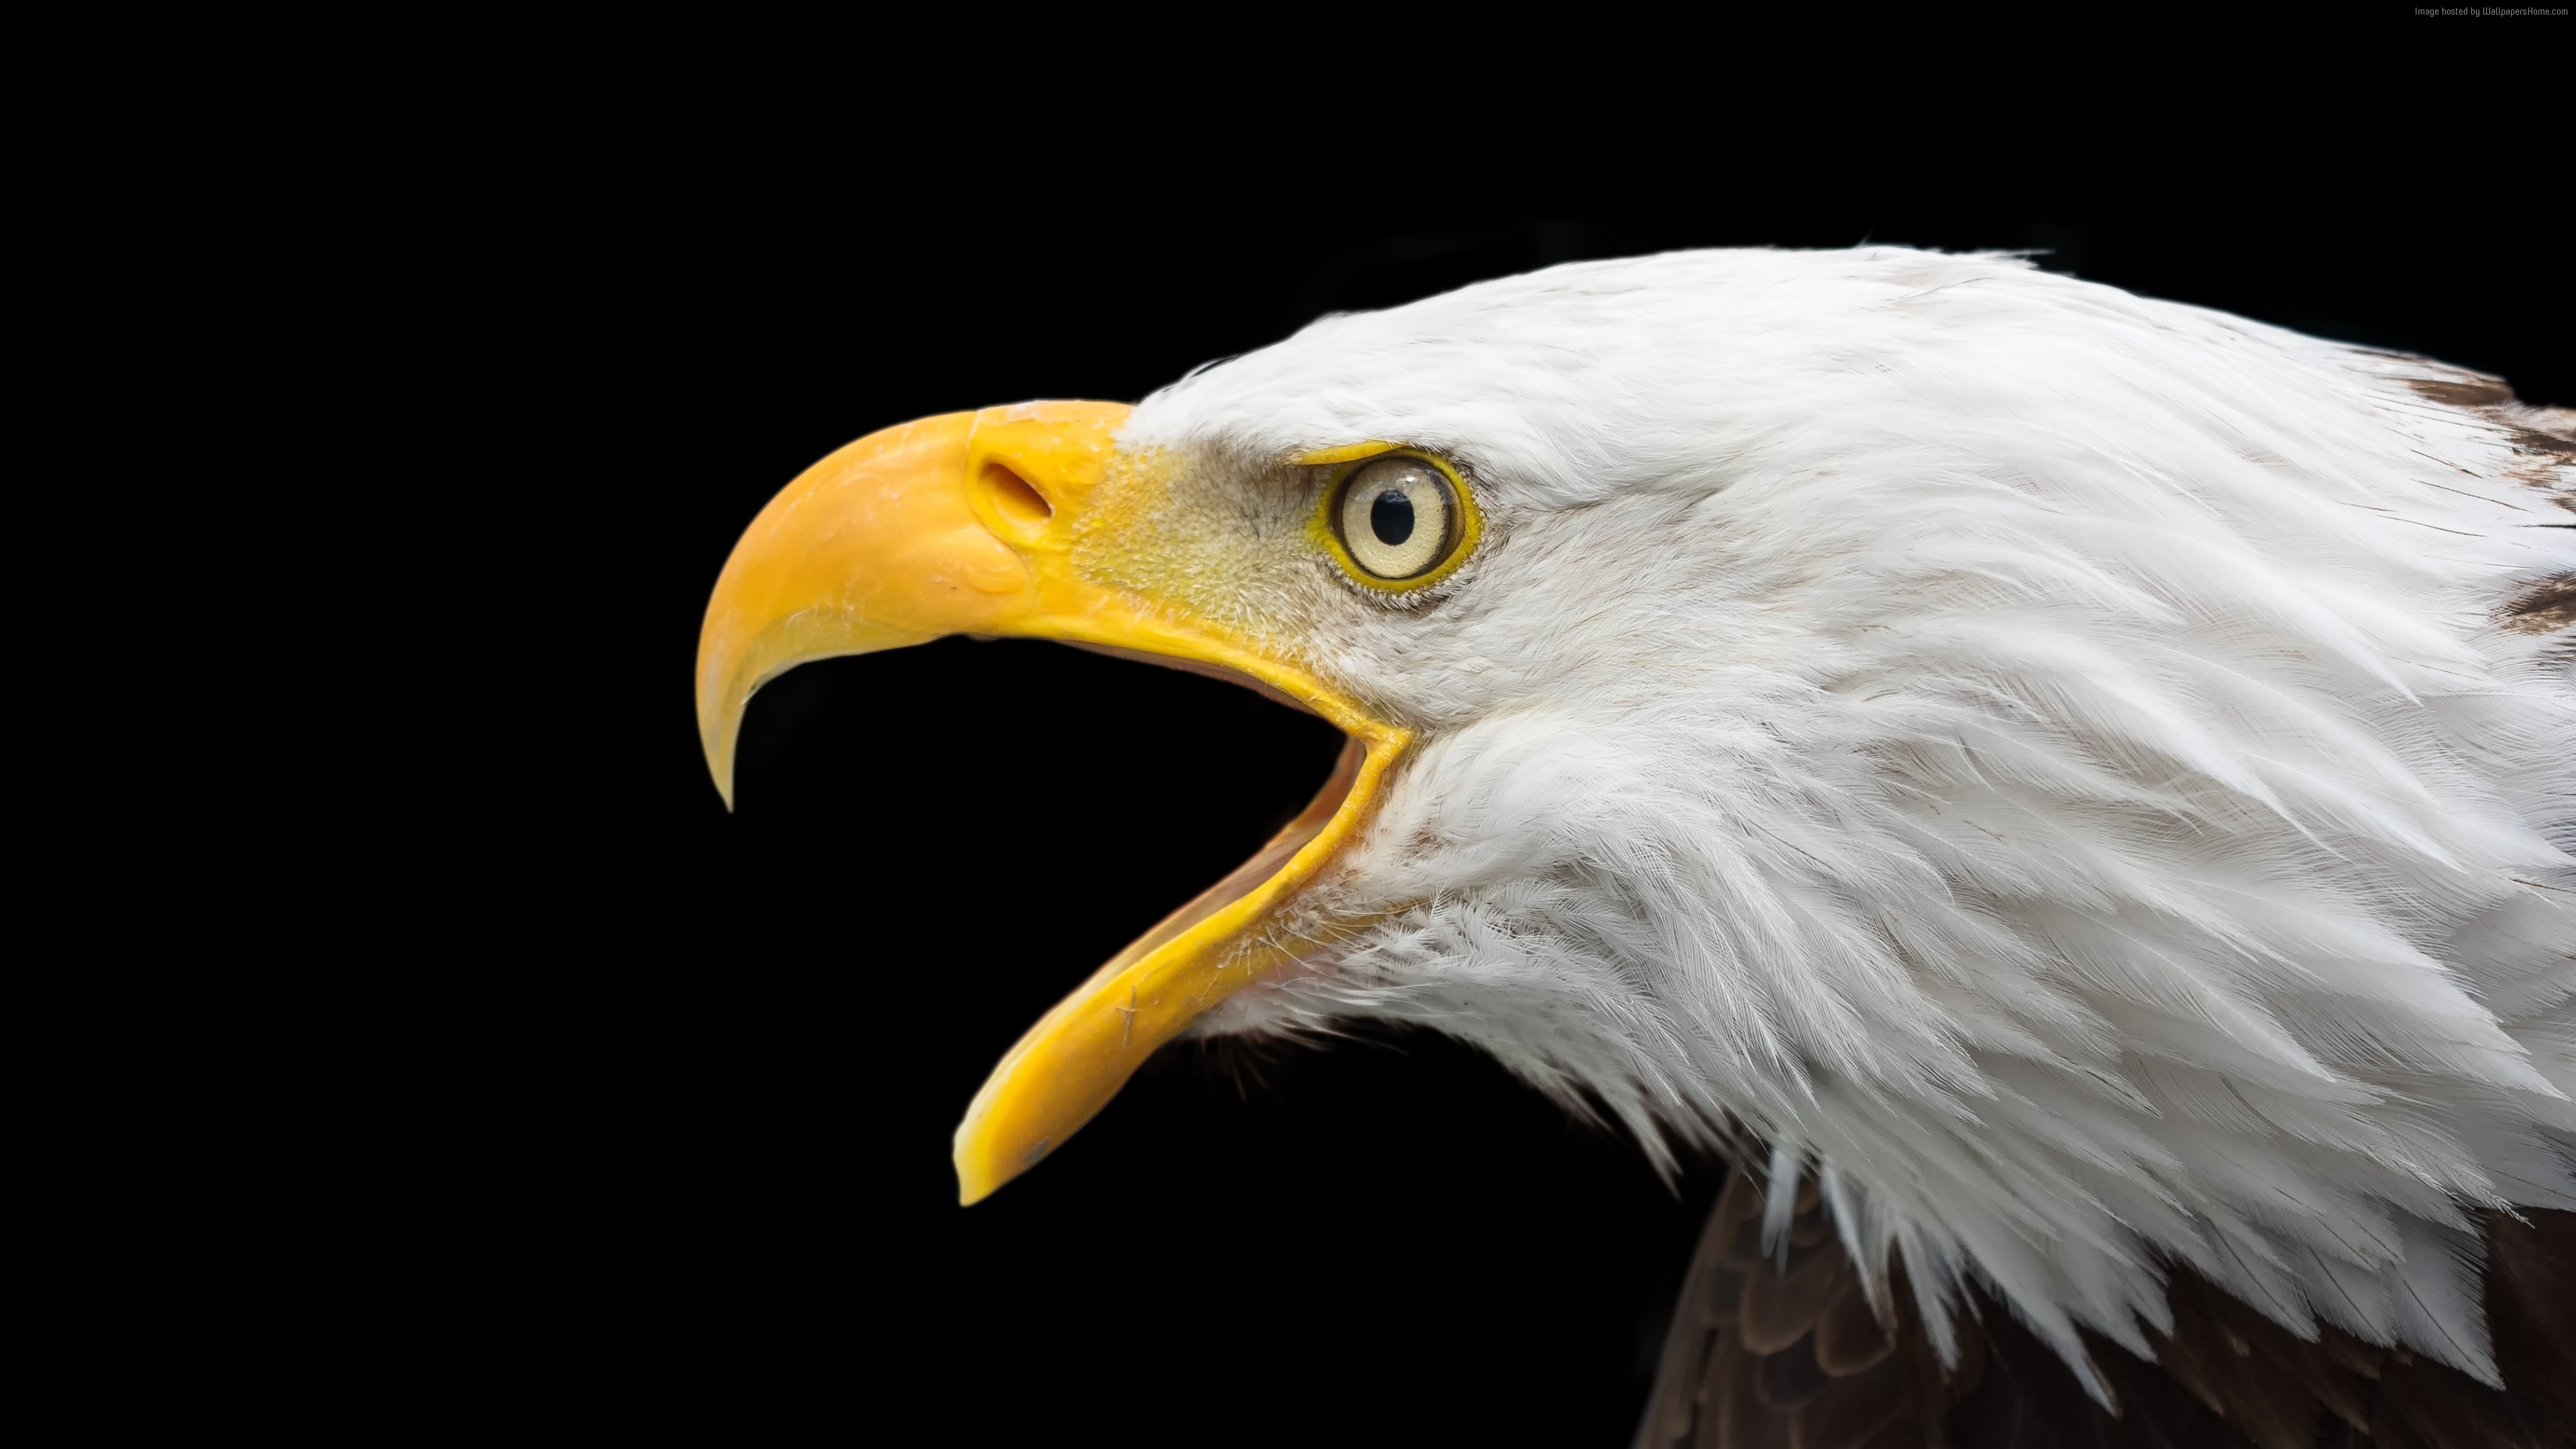 Stock Images Eagle Bird 4k Stock Images Wallpaper